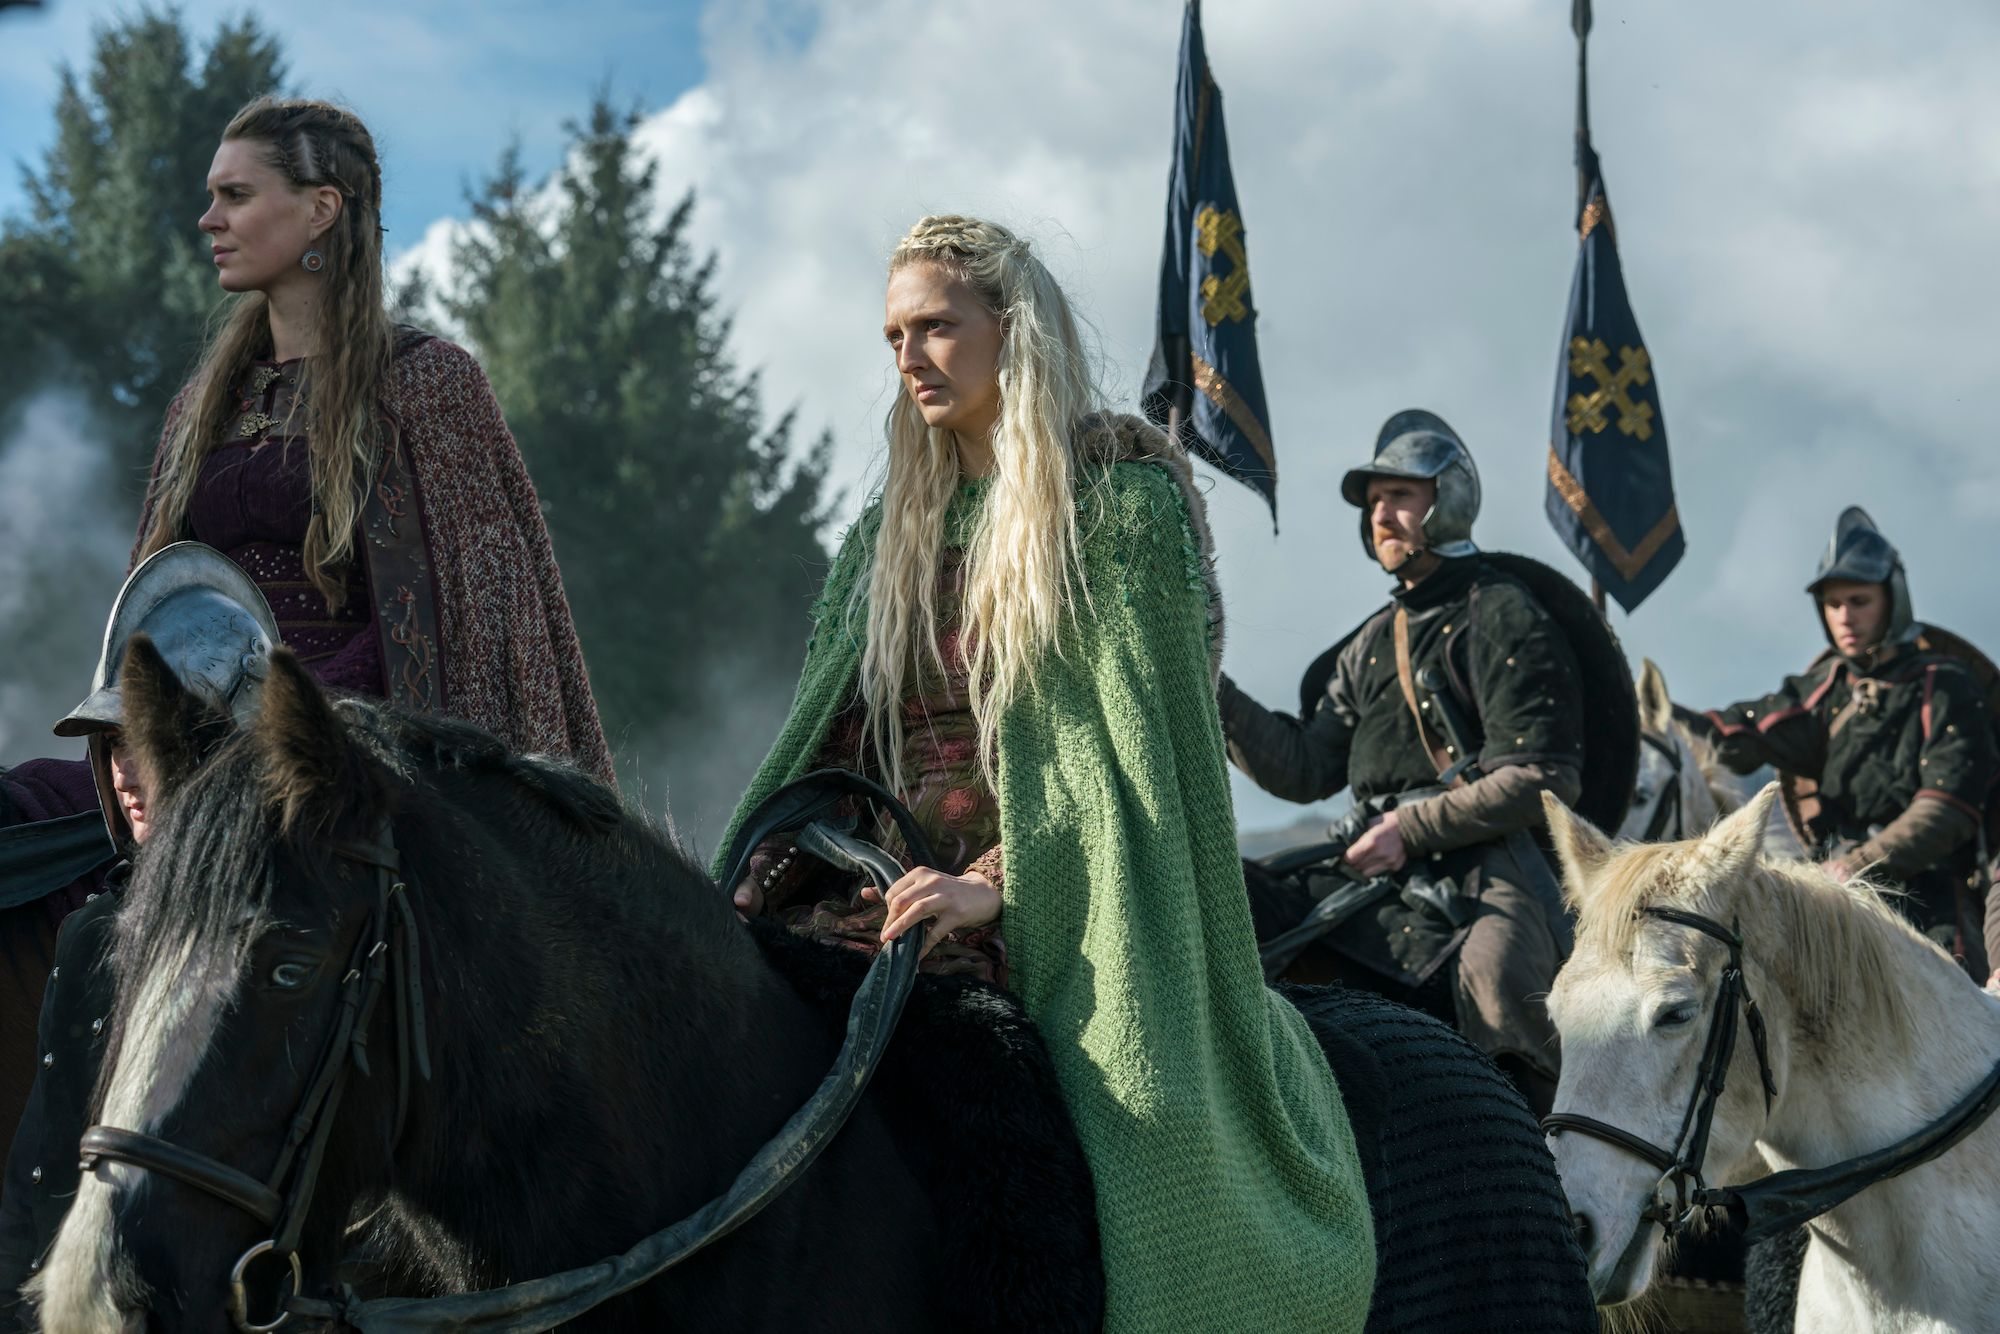 Vikings to End with Season 6